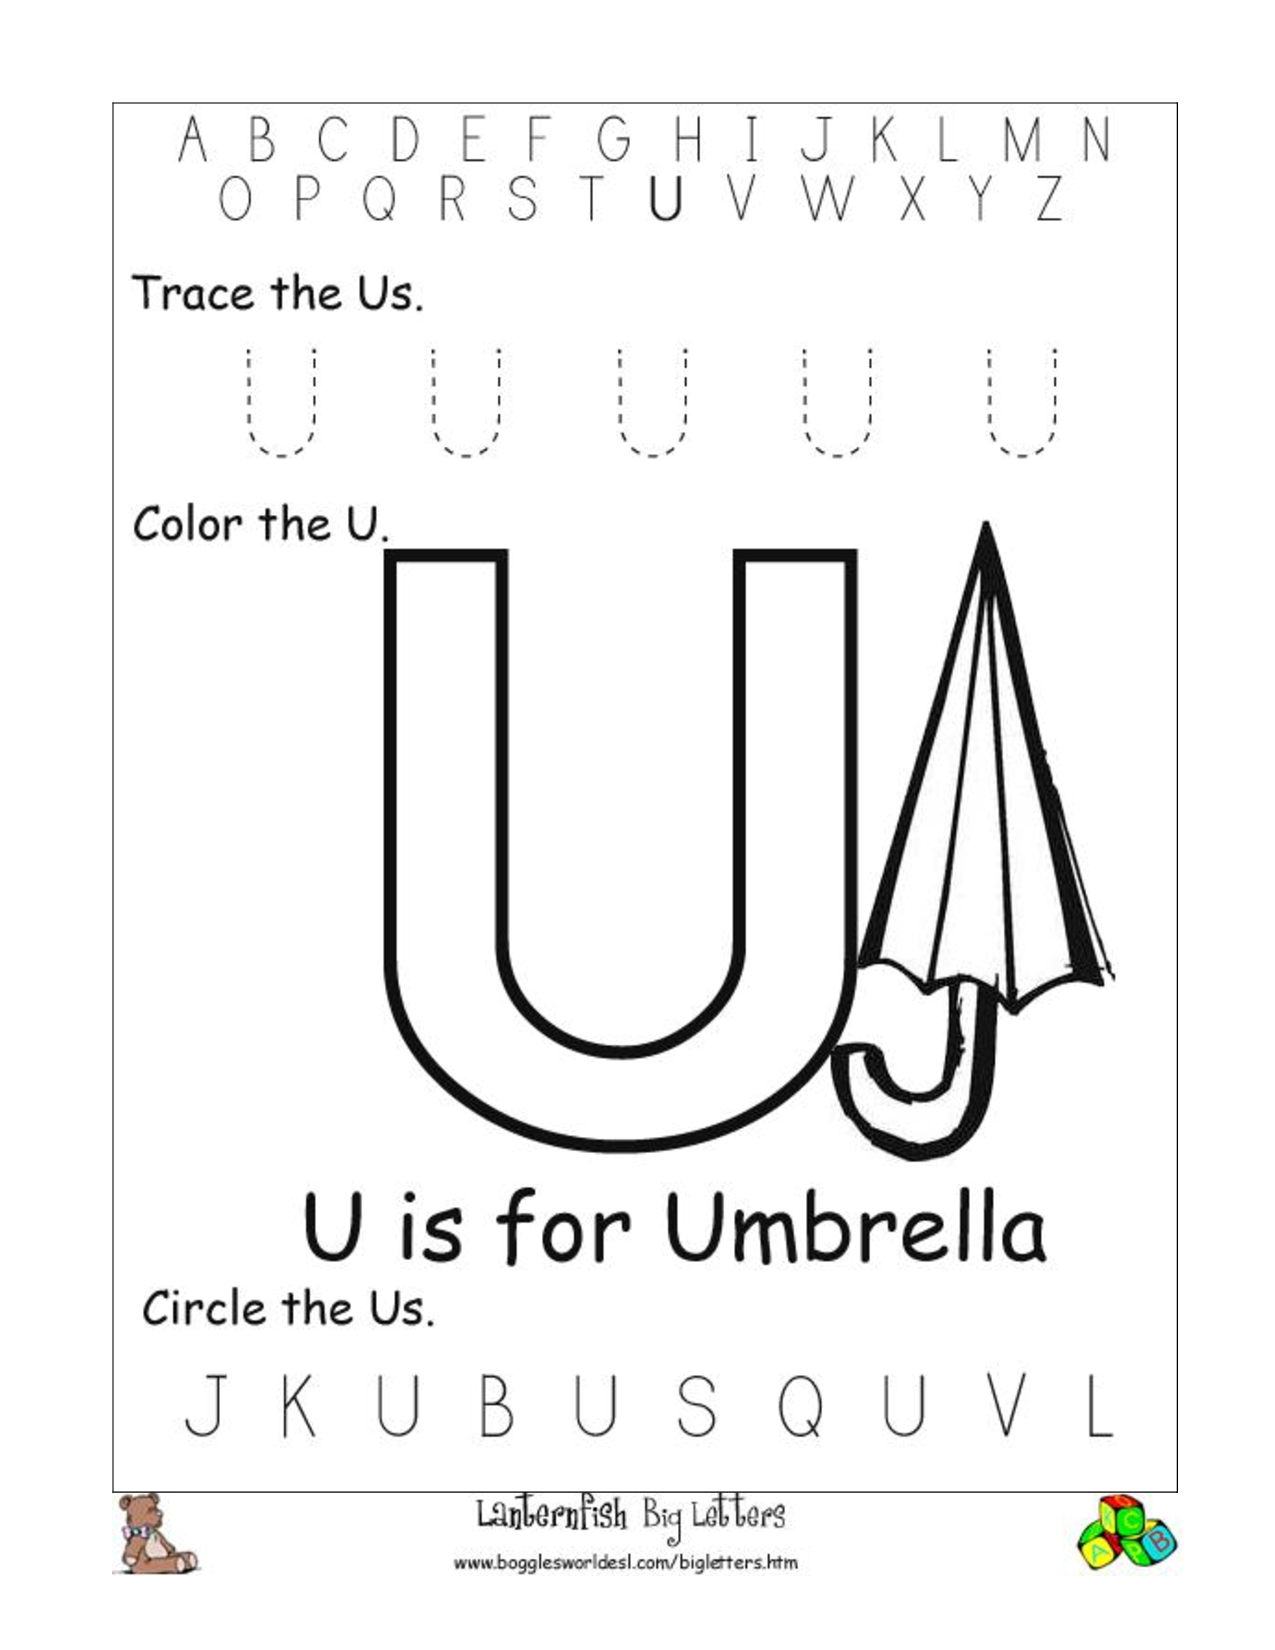 Alphabet worksheets for preschoolers alphabet worksheet big letter alphabet worksheets for preschoolers alphabet worksheet big letter u download now doc altavistaventures Images